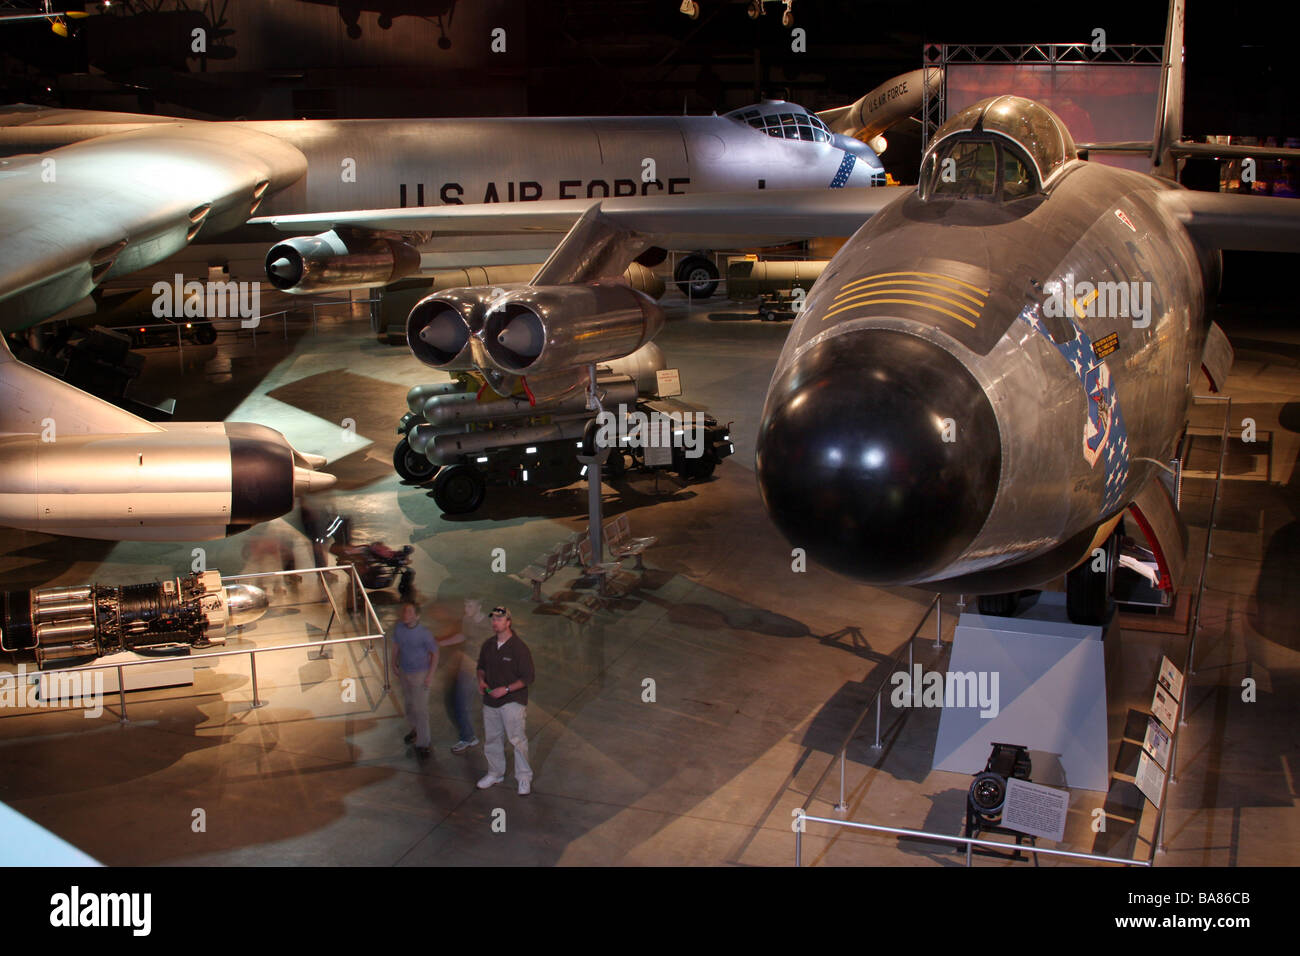 United States Air Force Museum Dayton Ohio wright patterson - Stock Image